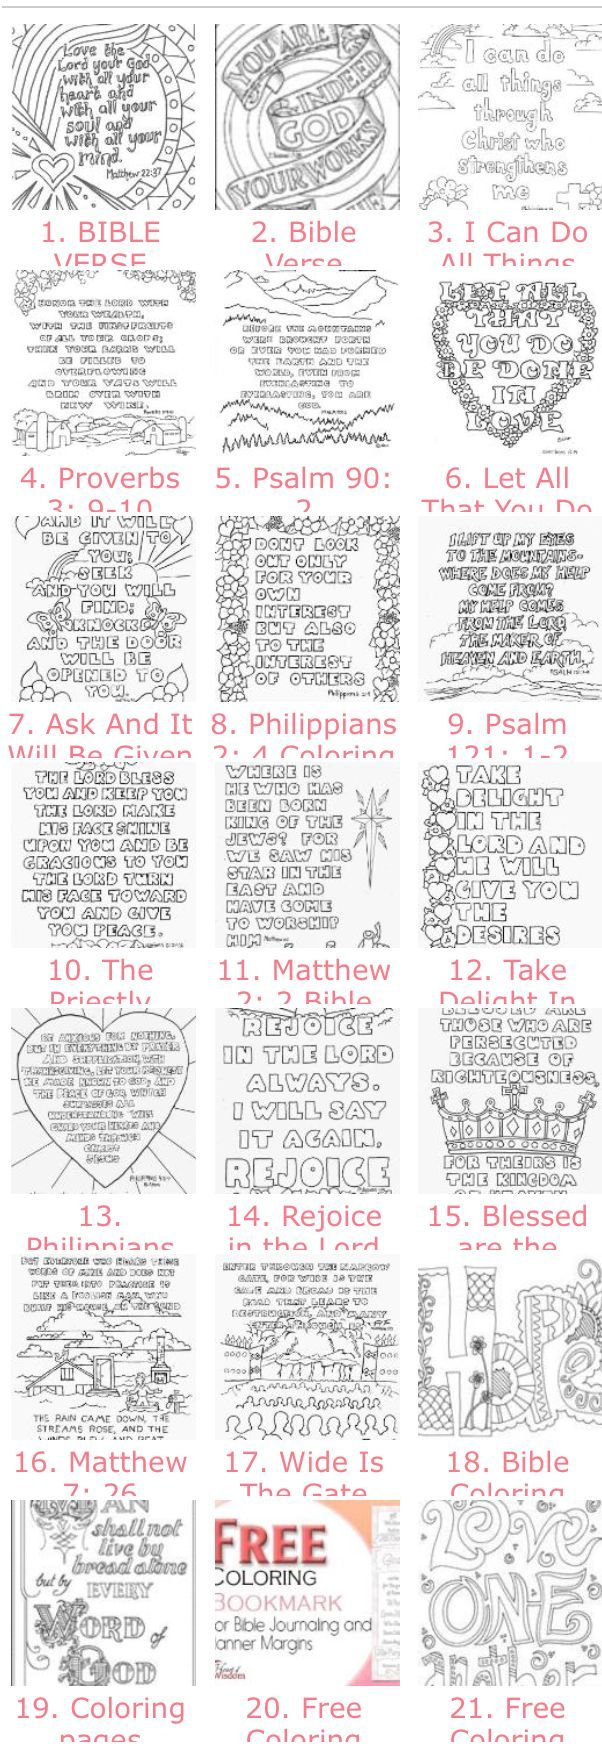 20 Free Adult Bible Coloring Pages You Should See The Images On Page But